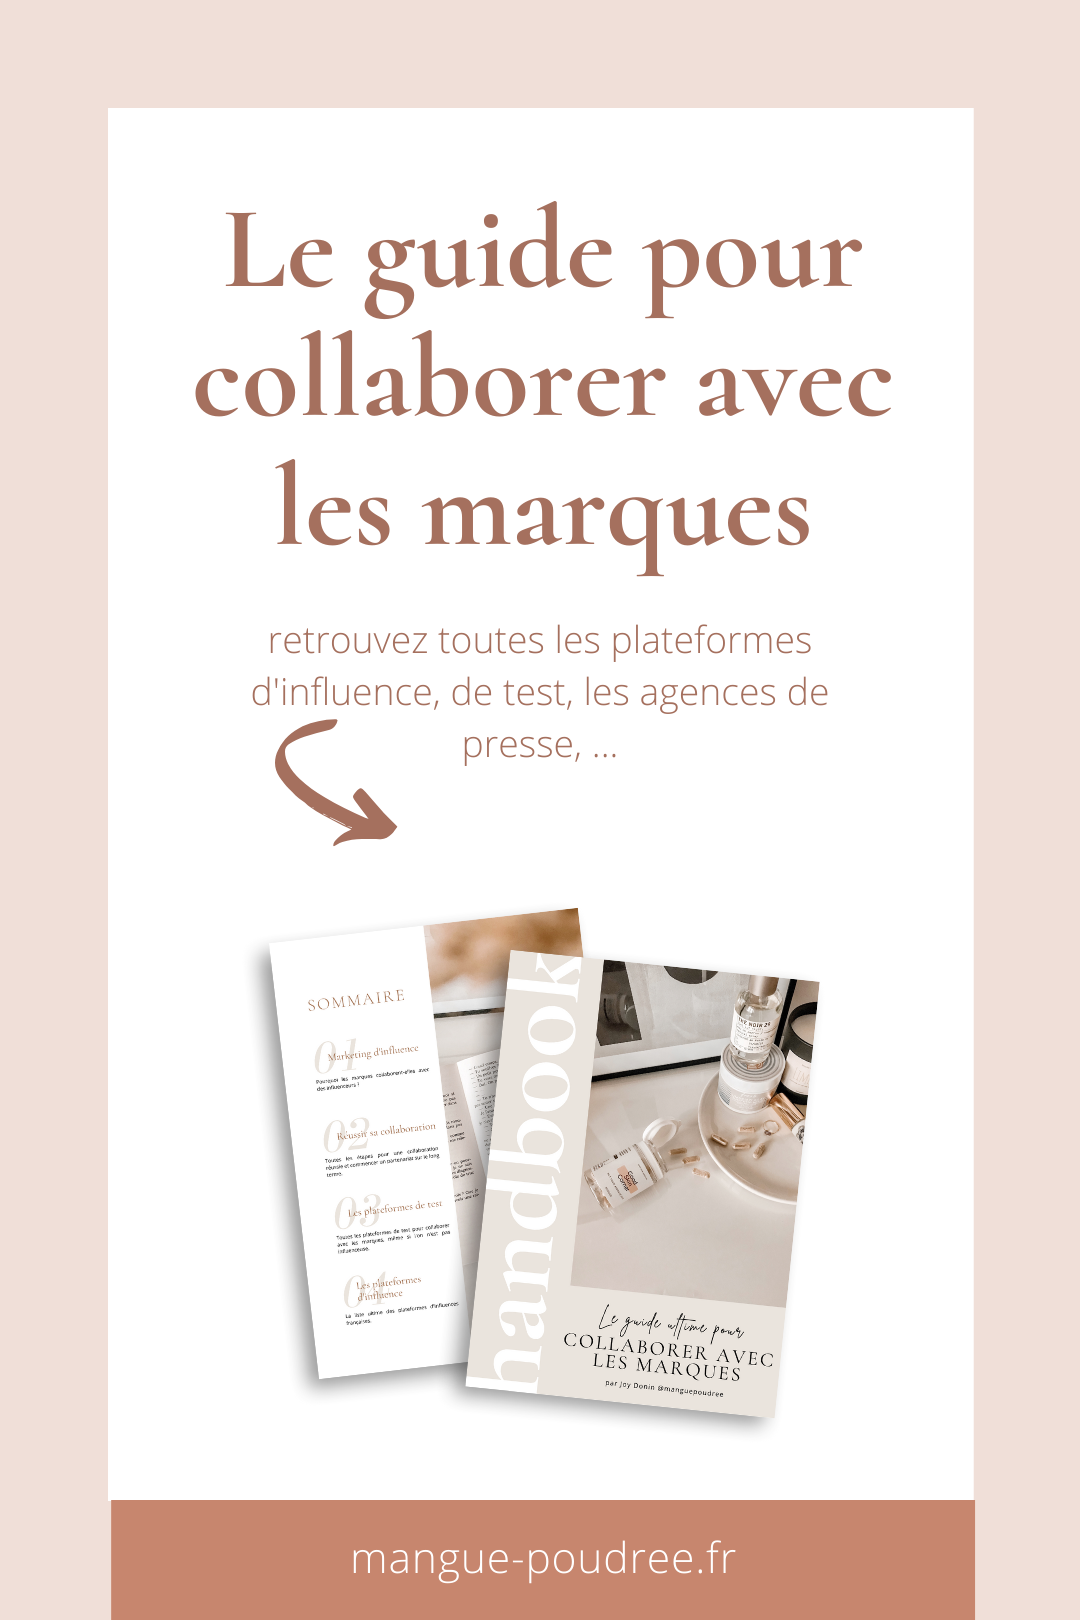 Comment collaborer avec les marques guide e-book - Blog Mangue Poudree - Blog mode et lifestyle a reims paris influenceuse - pinterest 01